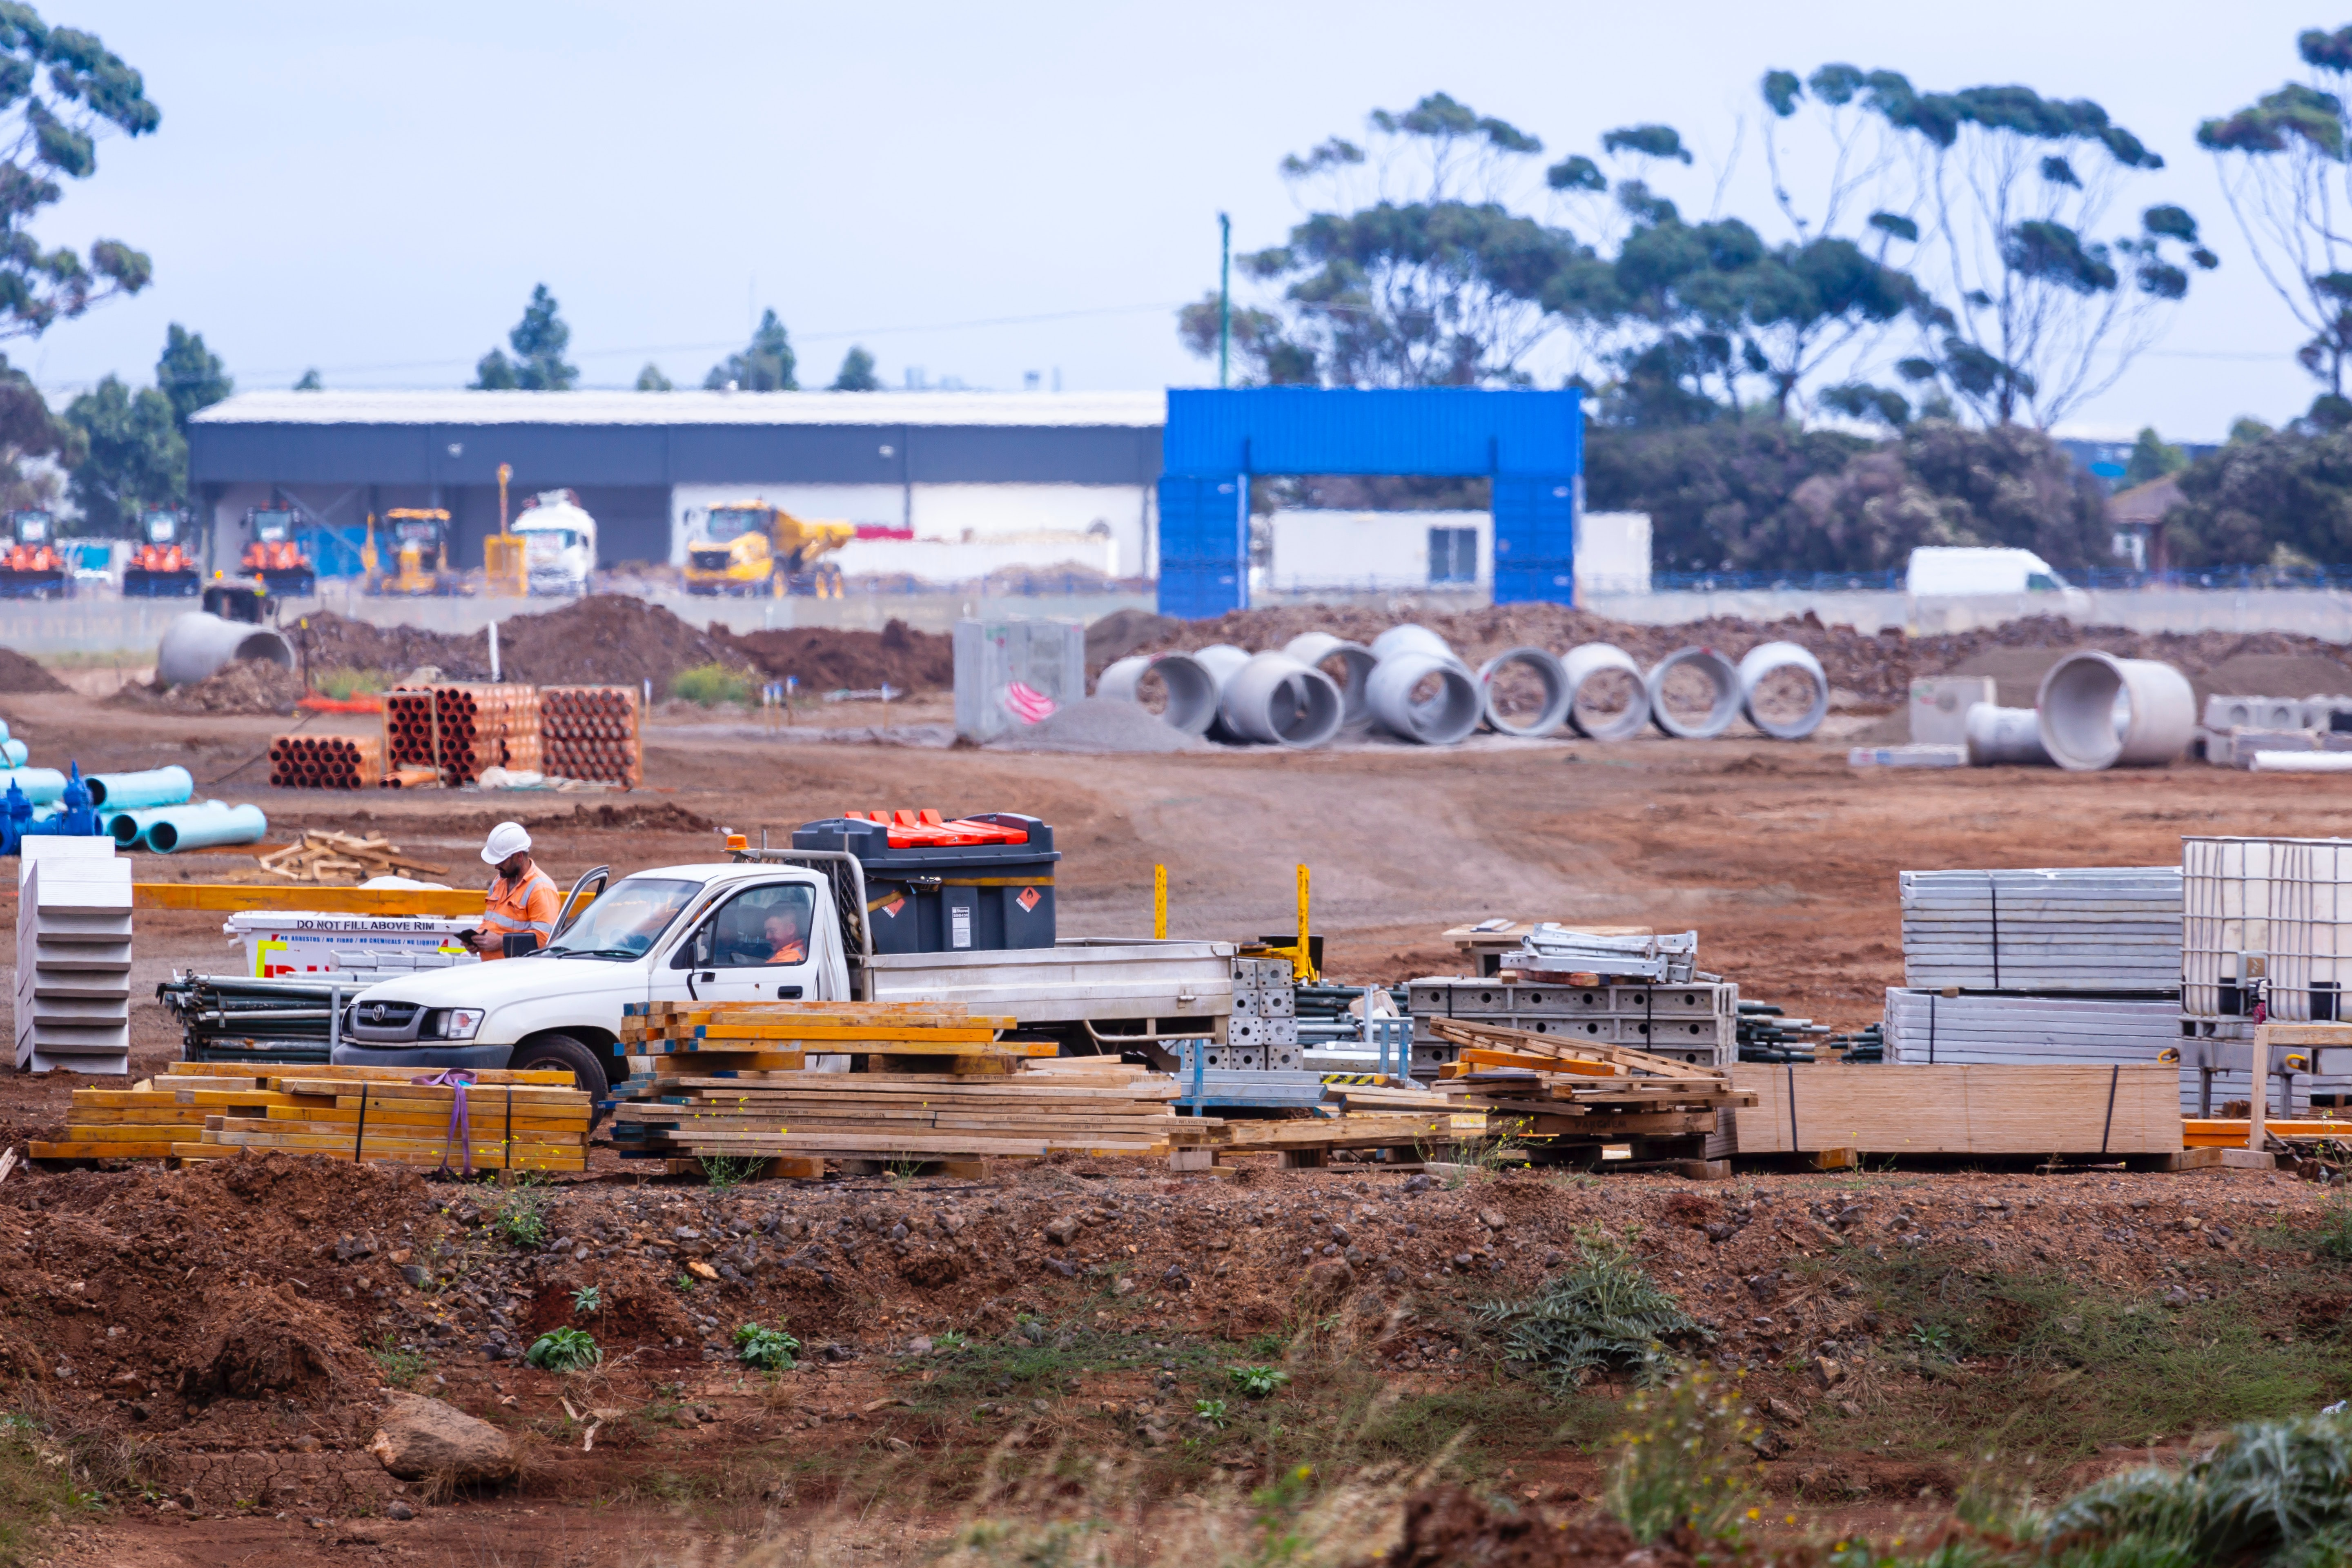 Vehicle parked at a construction site in Australia, with a construction worker next to it wearing a hardhat and an orange reflective jacket.